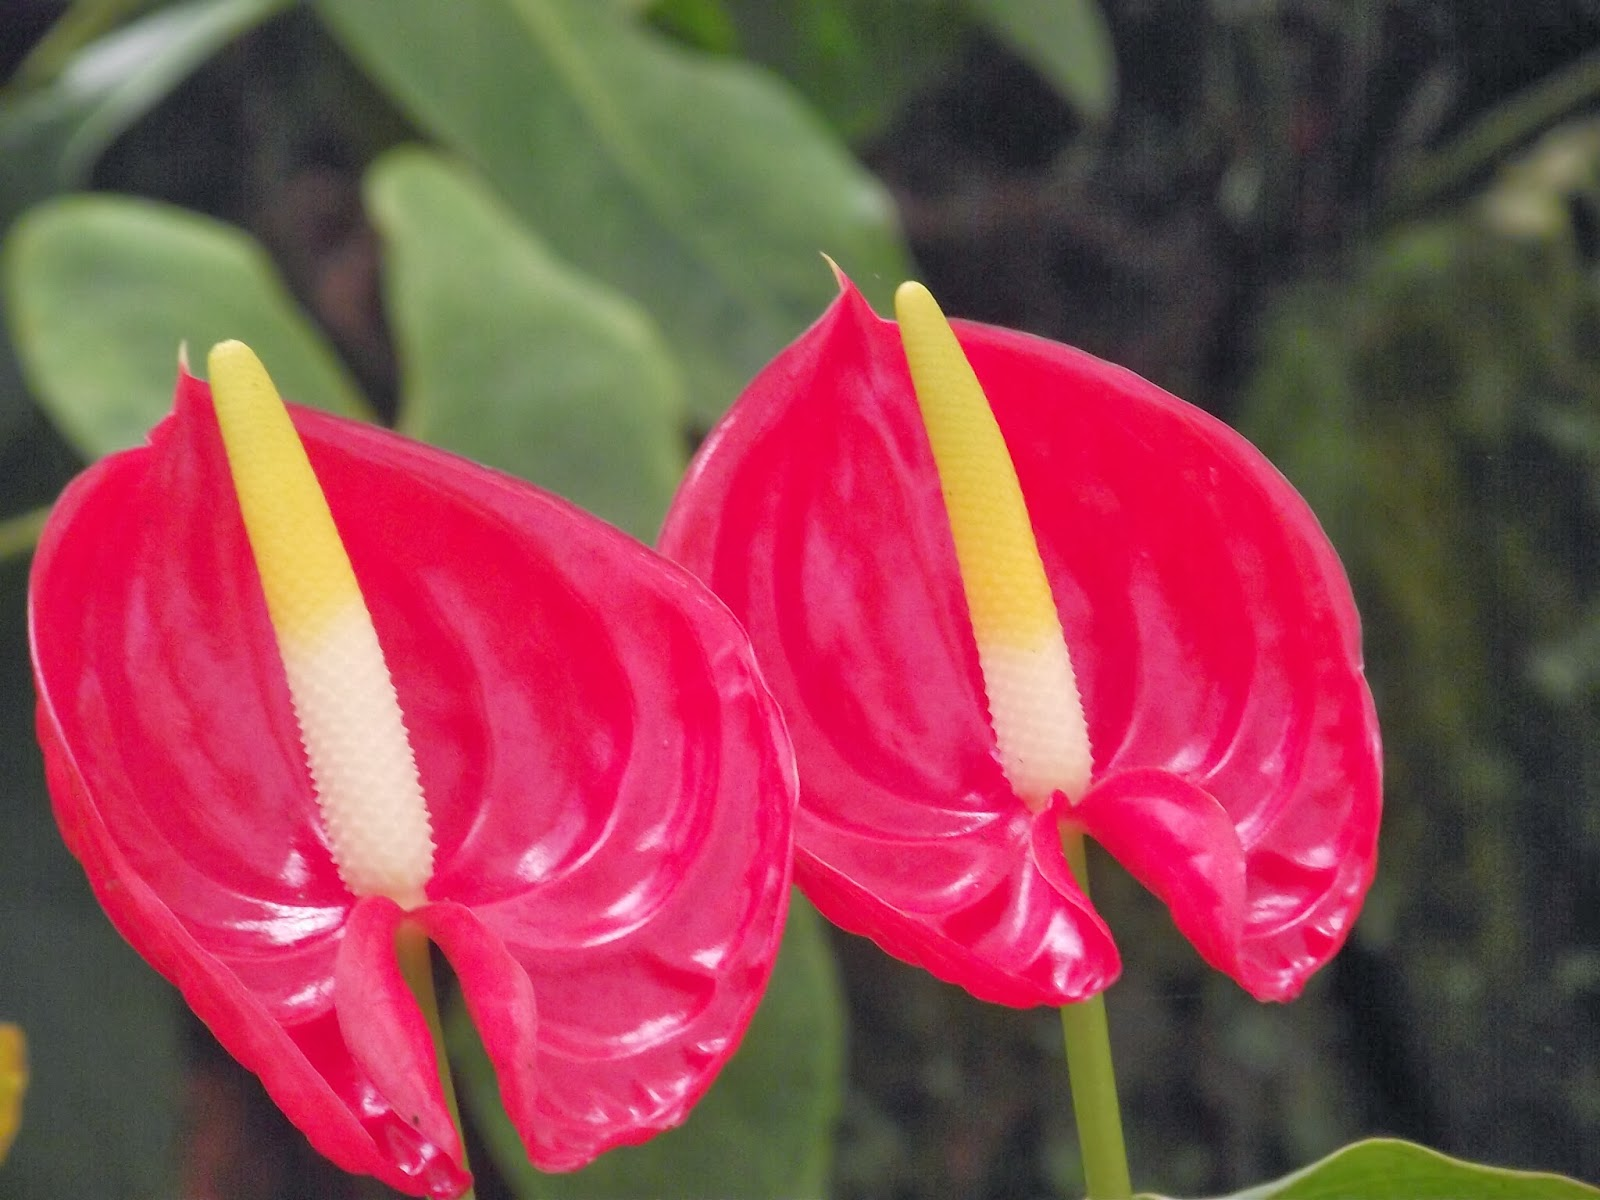 Ramvaidyblog anthurium a flower for wase par excellence anthurium flowers are small and develop crowded in a spike on a fleshy axis called a spadix a characteristic of the araceae the flowers on the spadix are izmirmasajfo